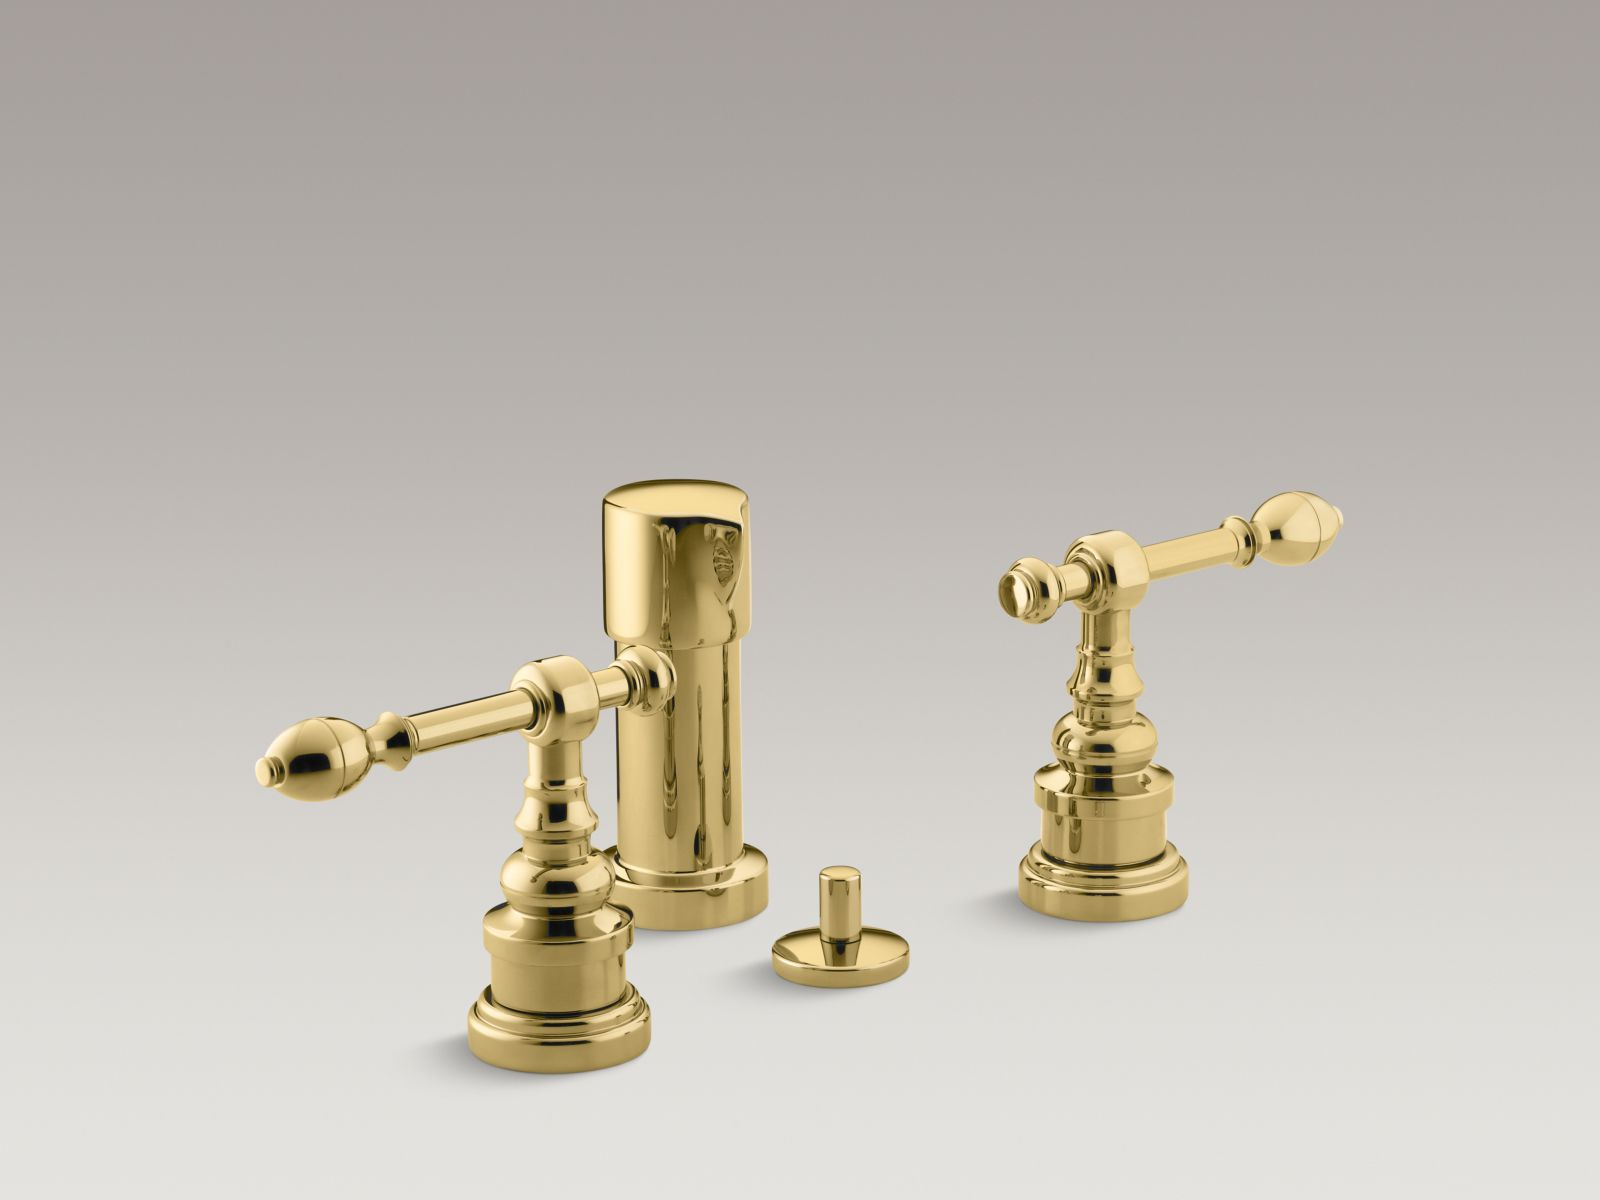 Kohler K-6814-4-PB IV Georges Brass Vertical Spray Bidet Faucet with Lever Handles Vibrant Polished Brass